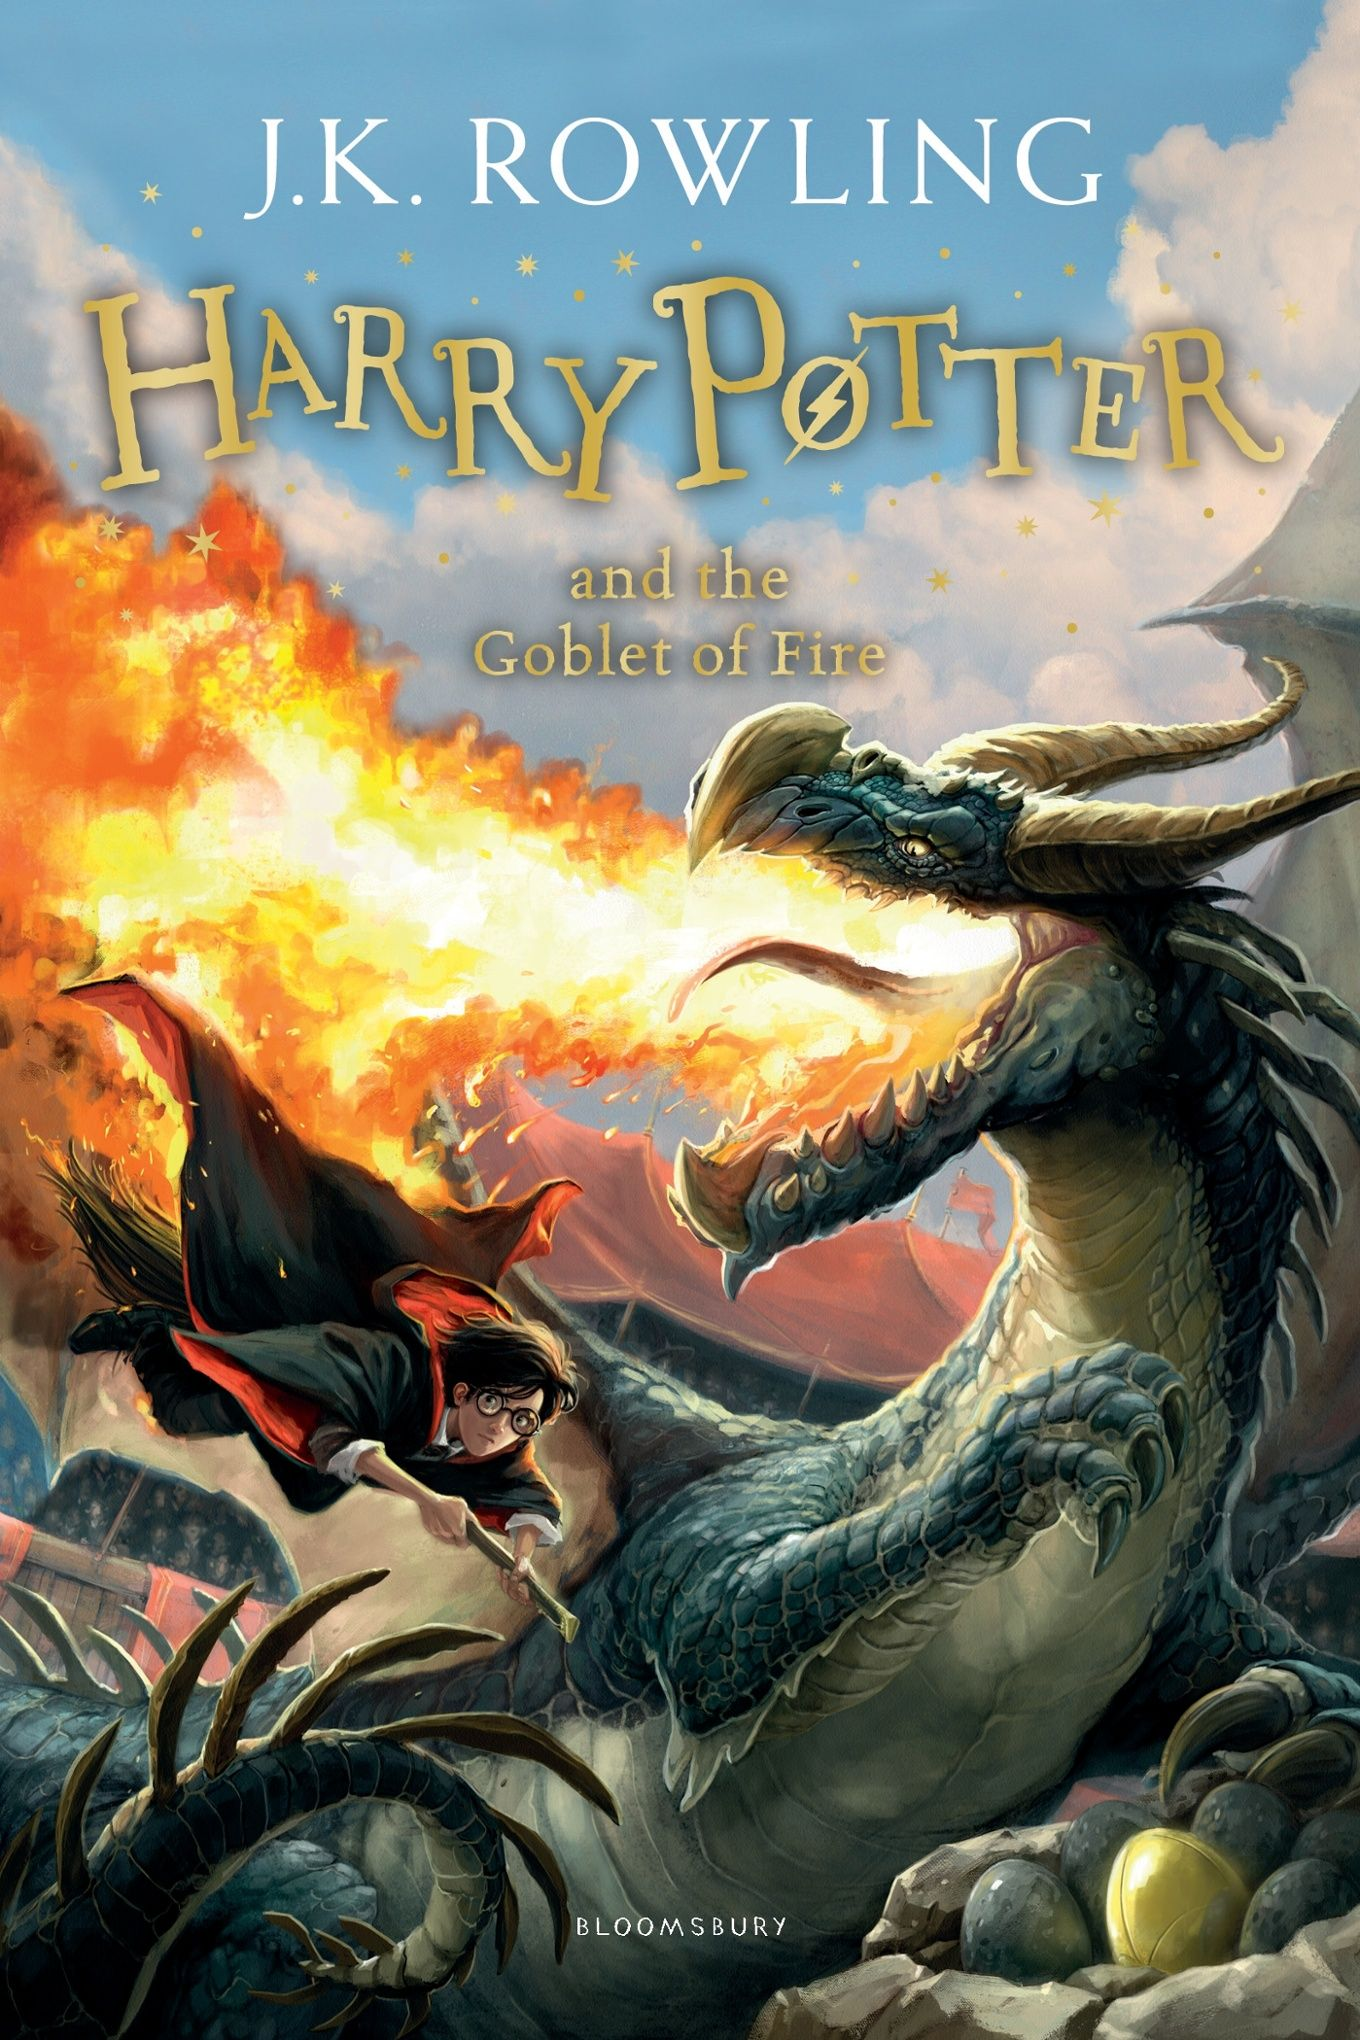 Illustrated Book Cover Guitar : New harry potter covers revealed